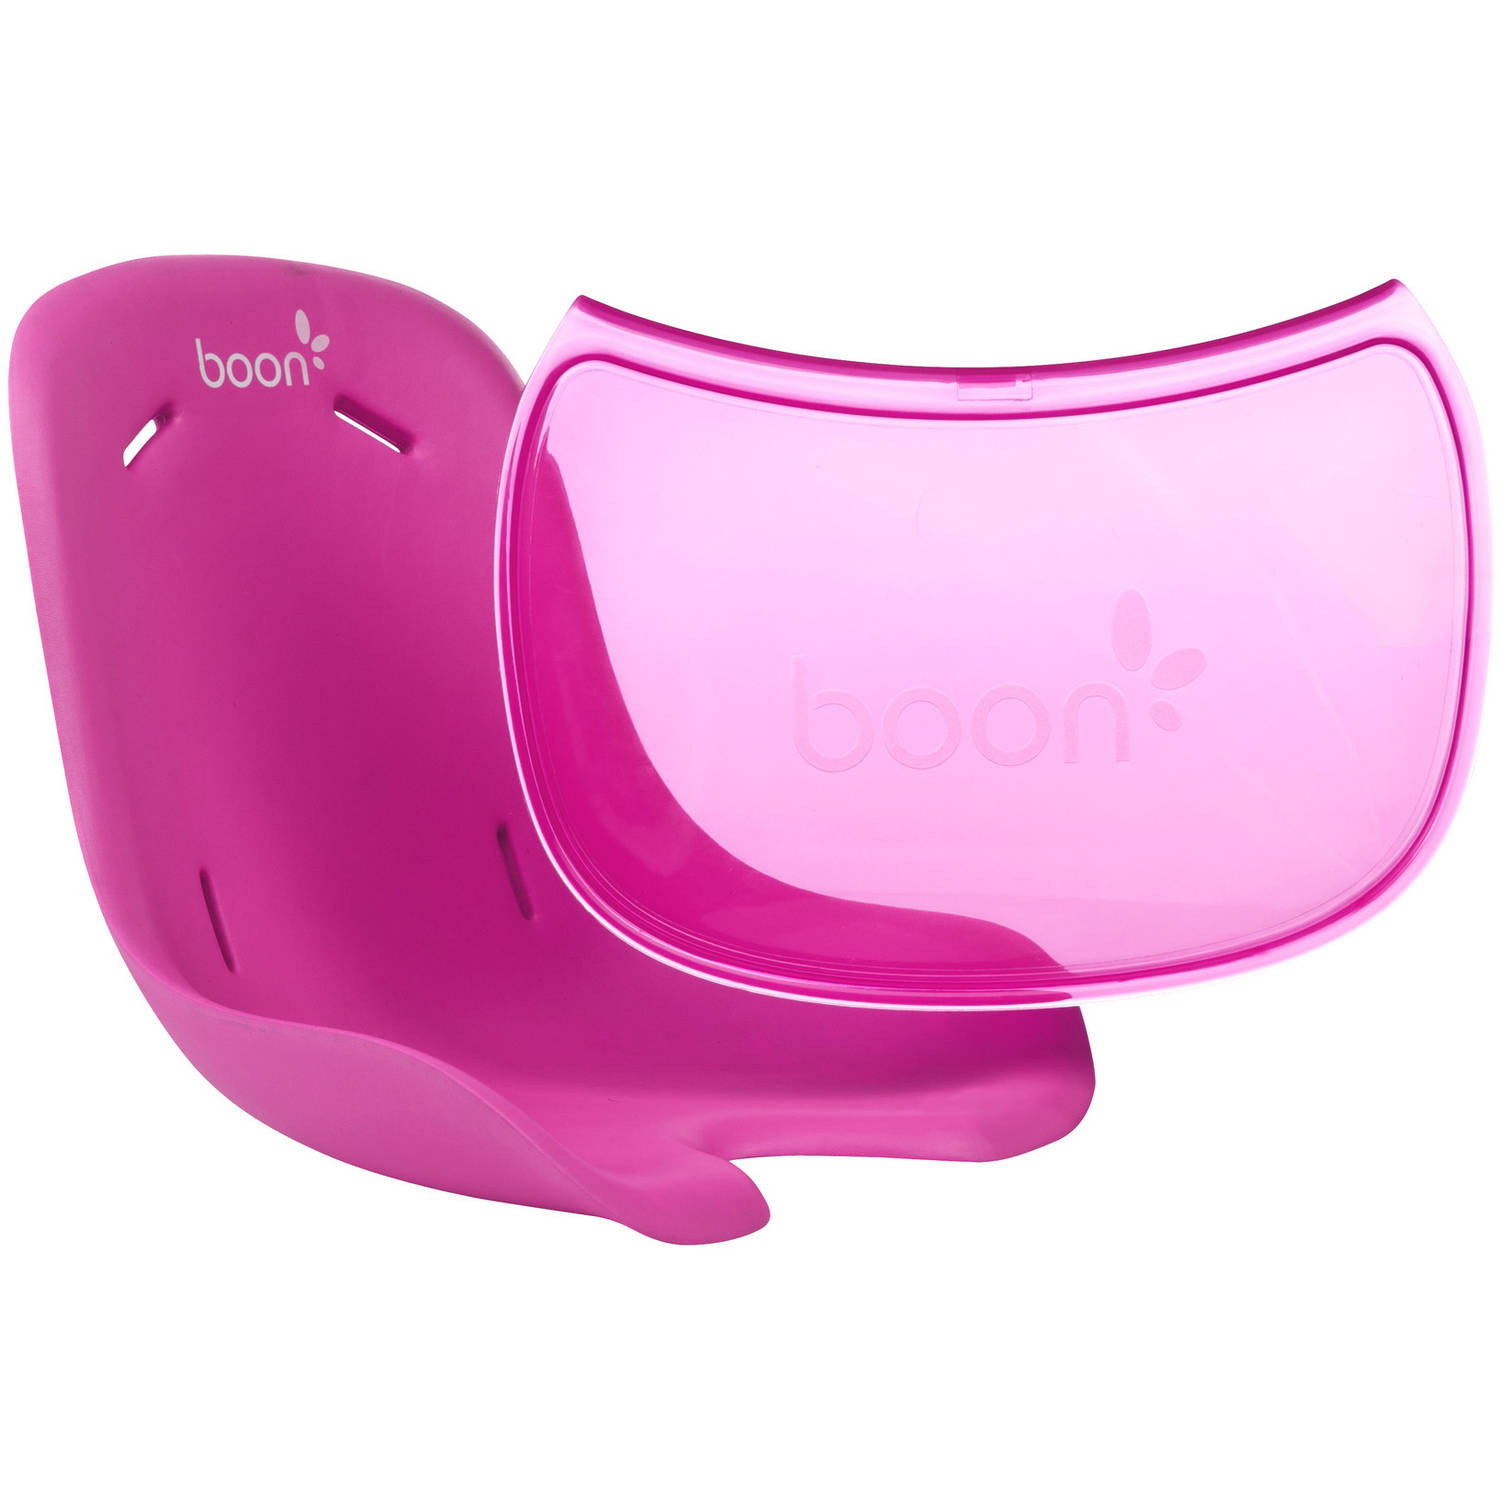 Boon flair high chair pink - Boon Flair High Chair Pink 17